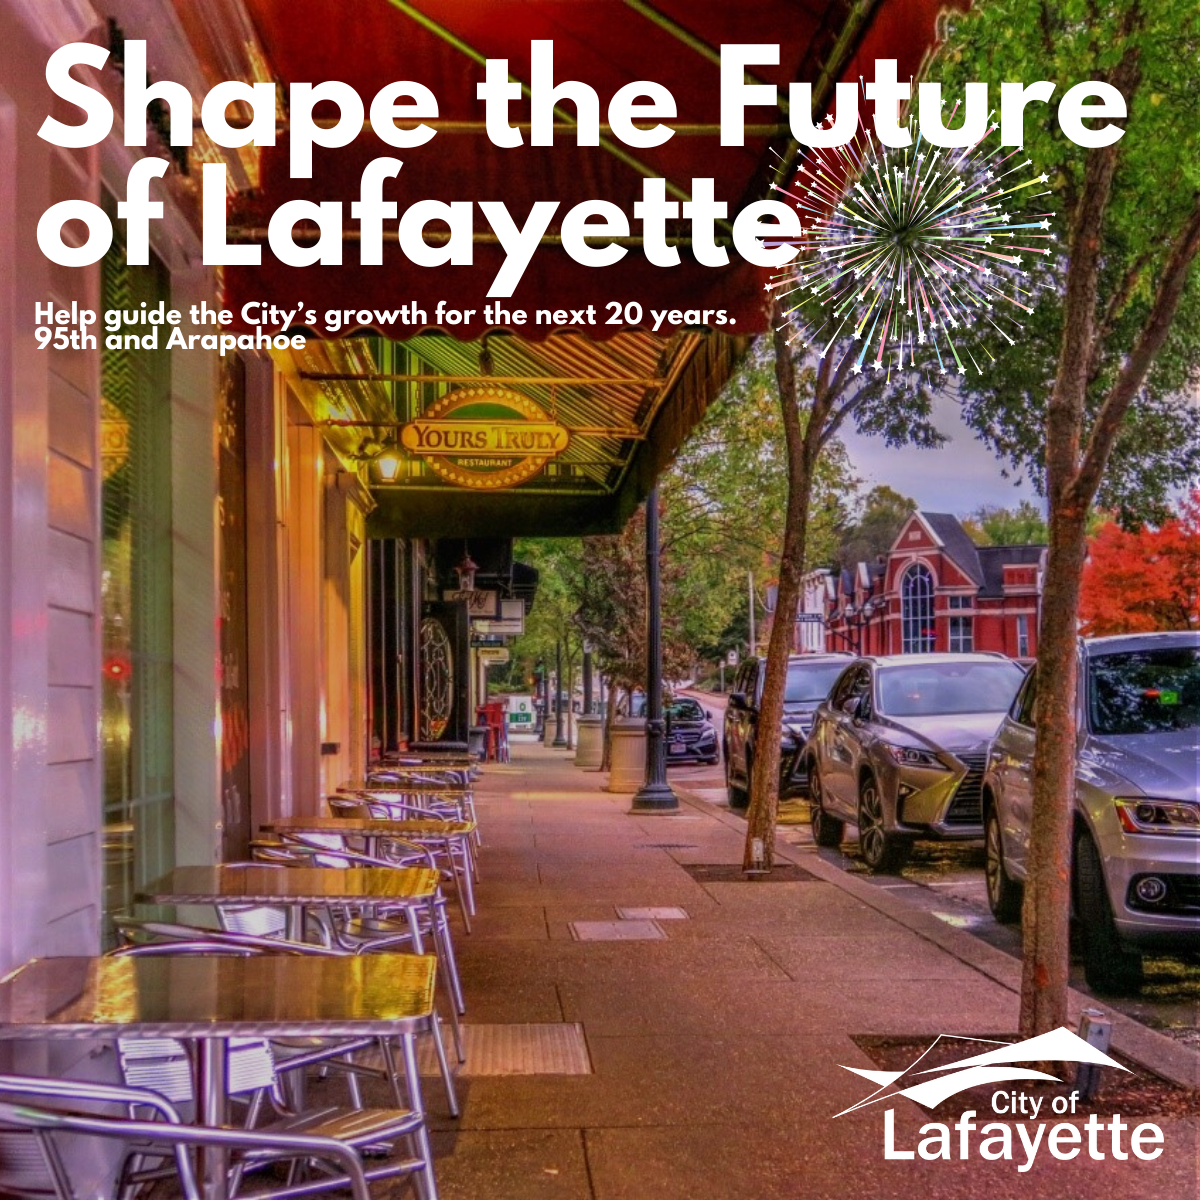 95th and arapahoe Comprehensive Plan